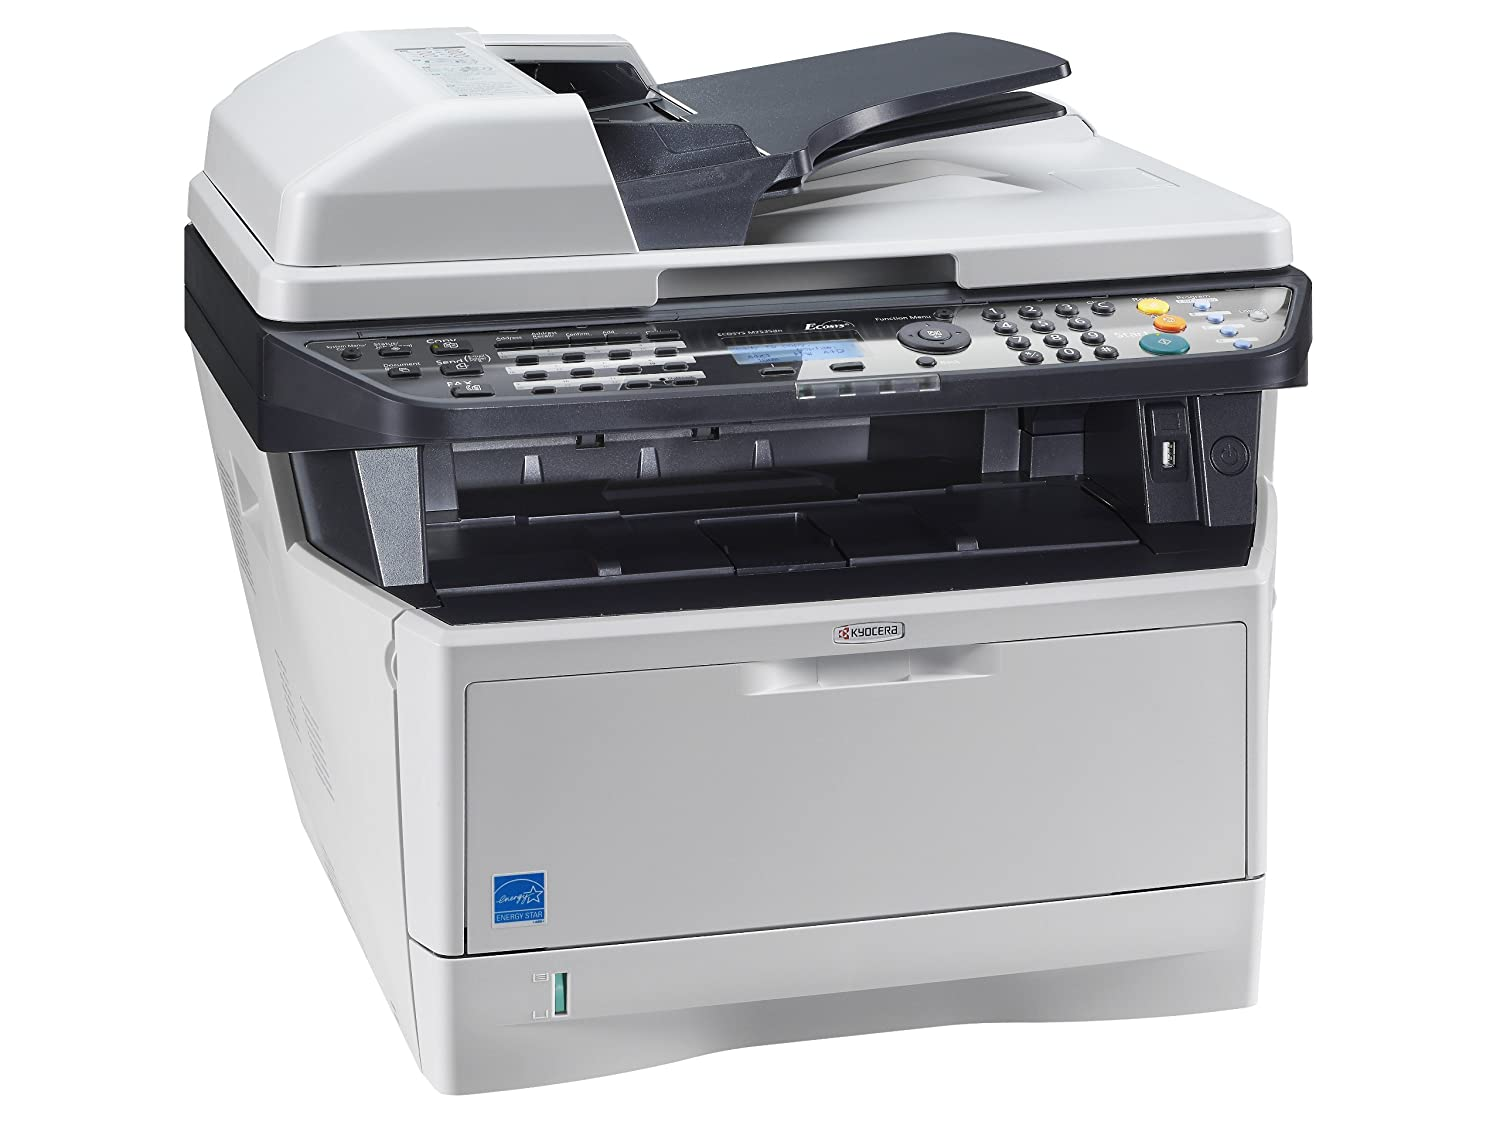 Amazon Kyocera 1102PN2US0 ECOSYS M2535dn Black and White Multifunctional Network Printer Standard Print Copy Fax and Color Scan Fast Output Speed